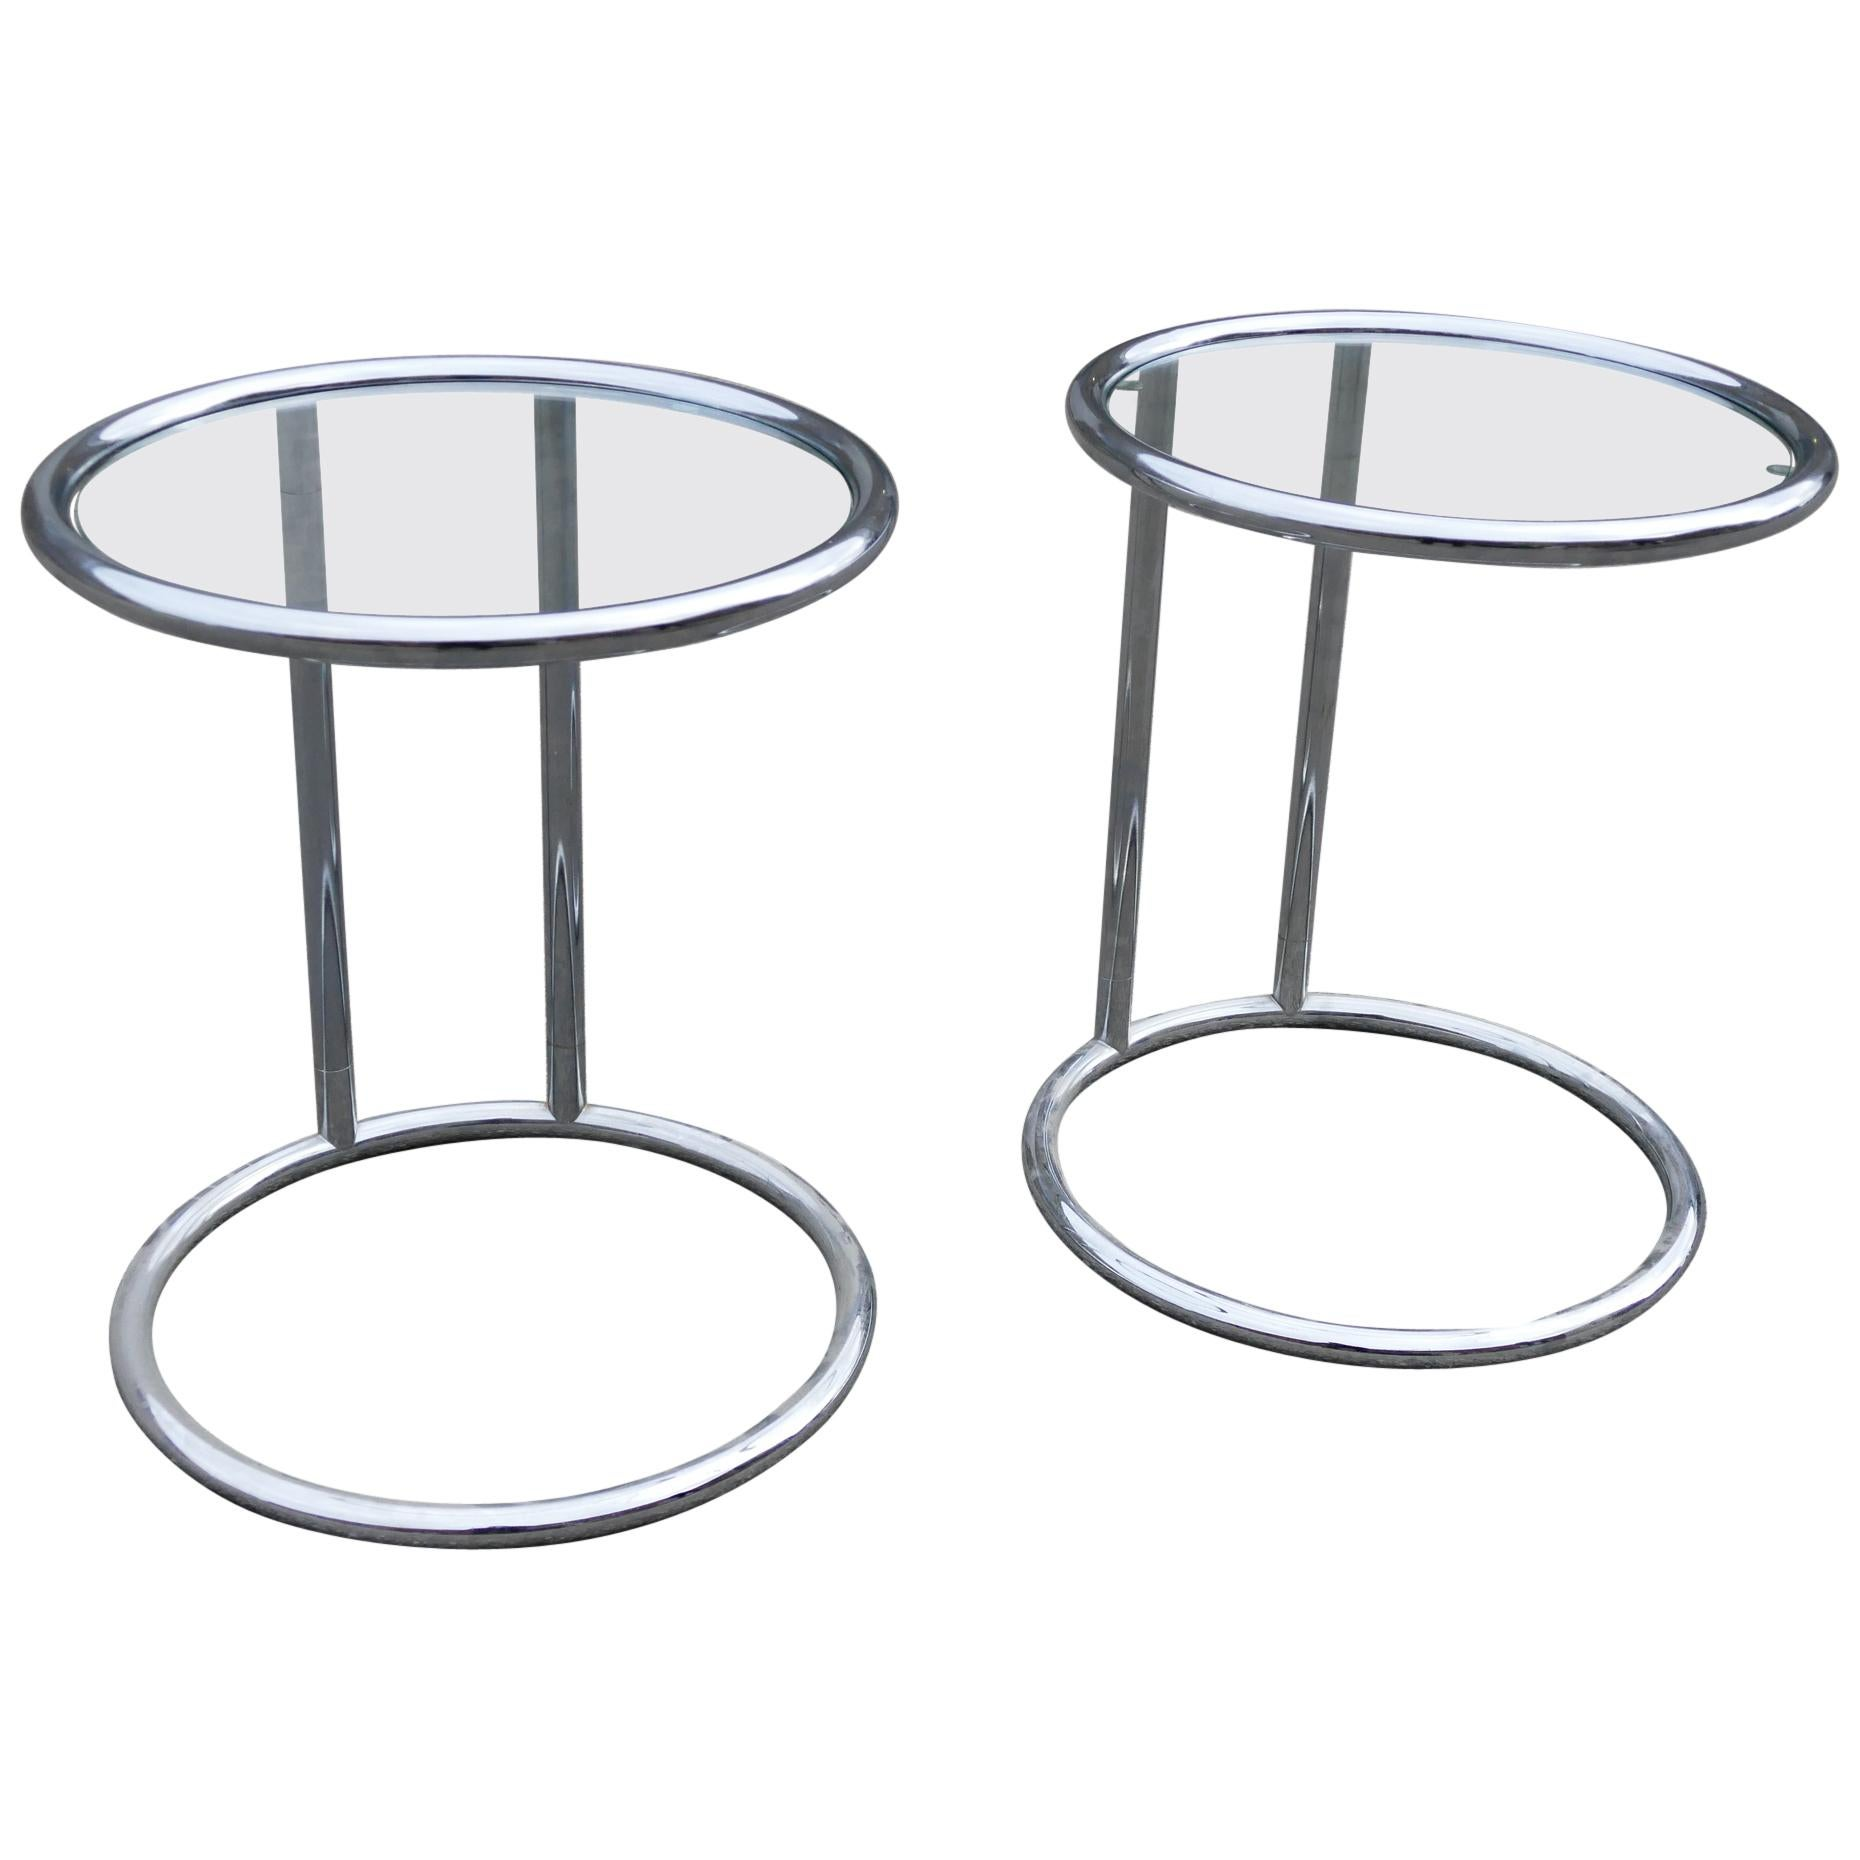 Simple Side Tables Chrome Glass, 1980s